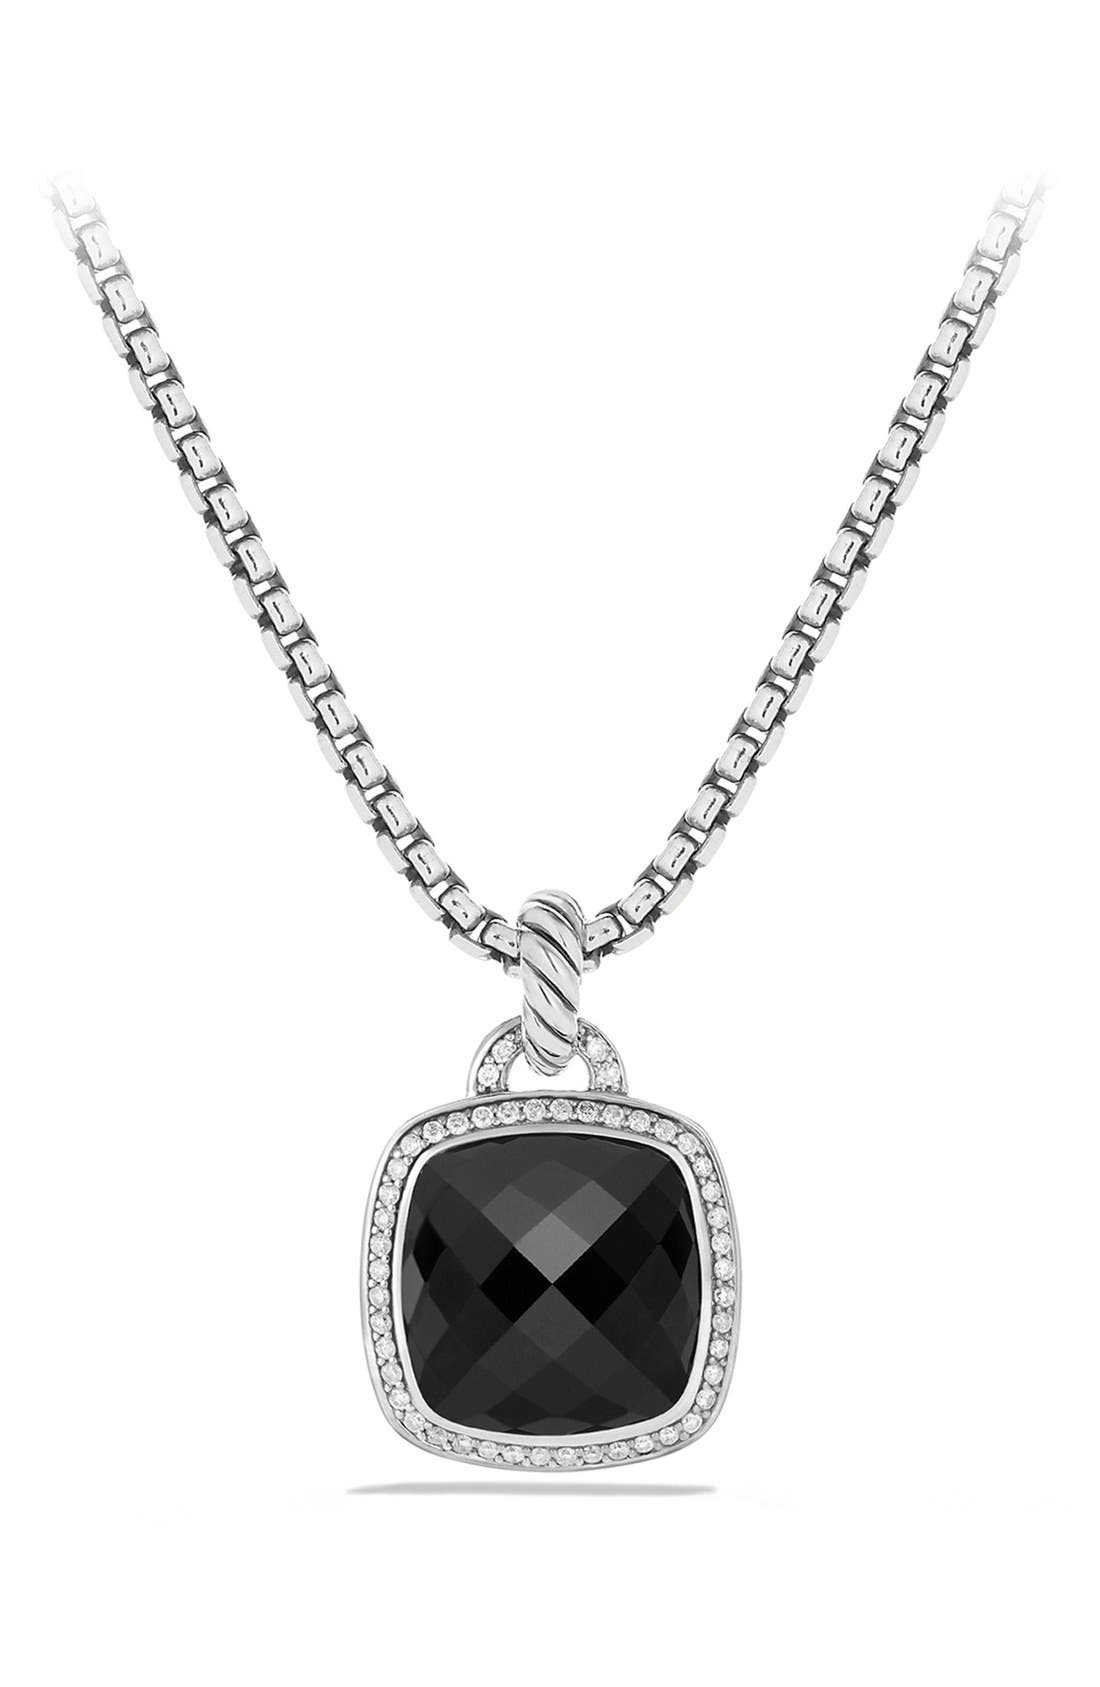 David Yurman 'Albion' Pendant with Semiprecious Stone and Diamonds